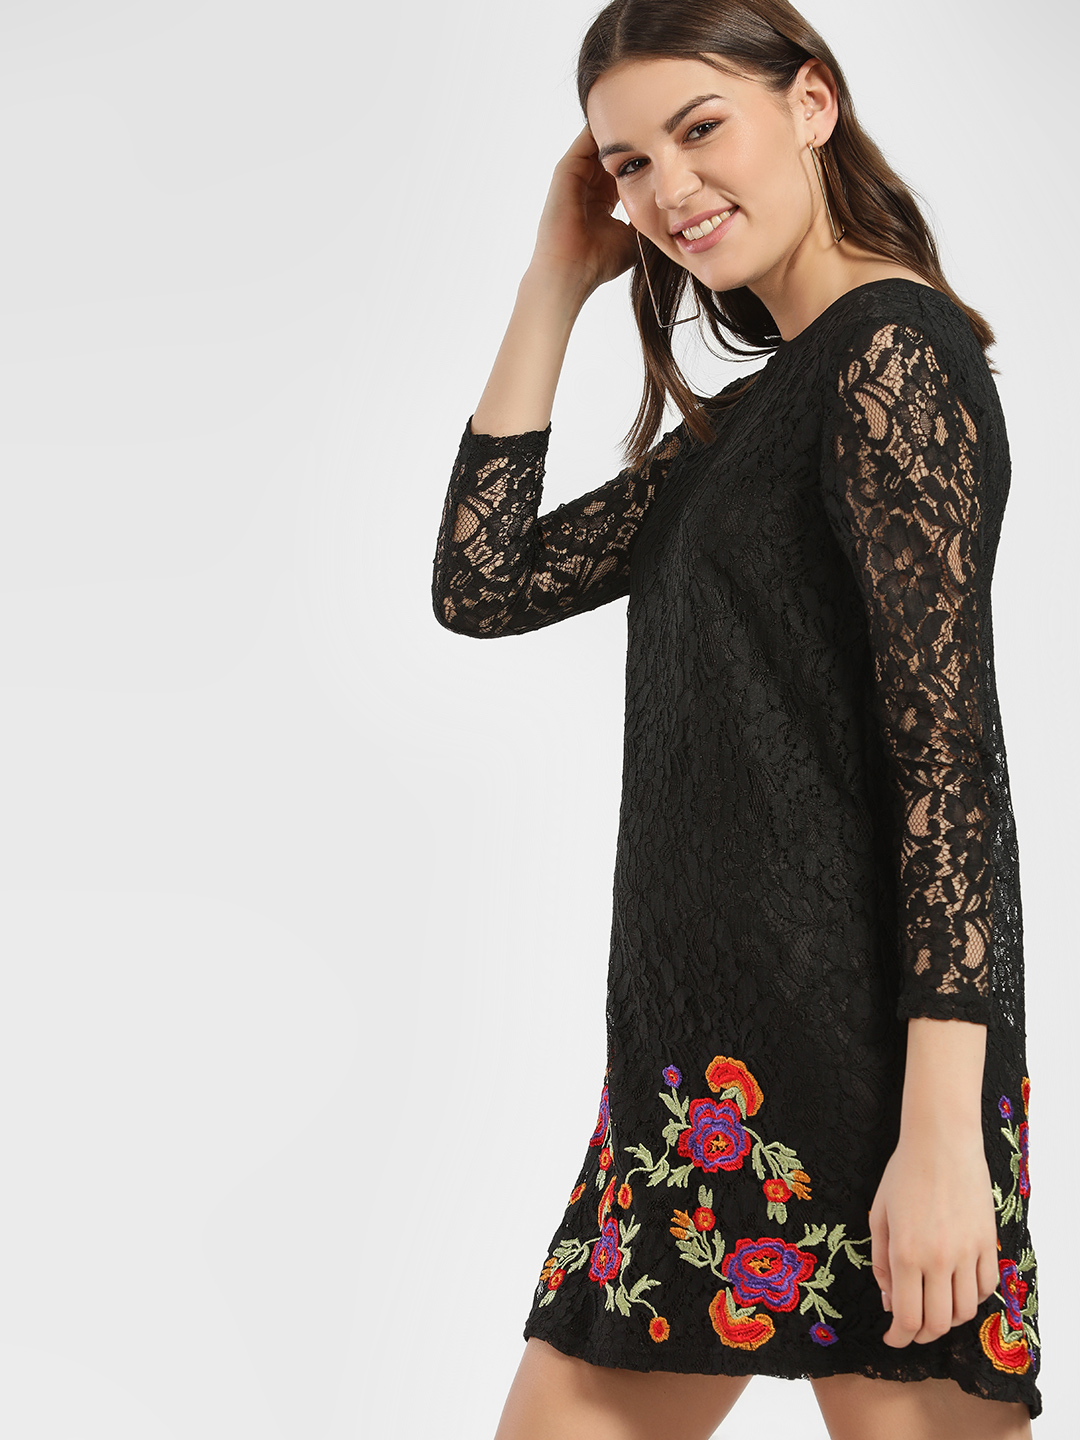 JJ's Fairyland Black Lace Floral Embroidered Shift Dress 1